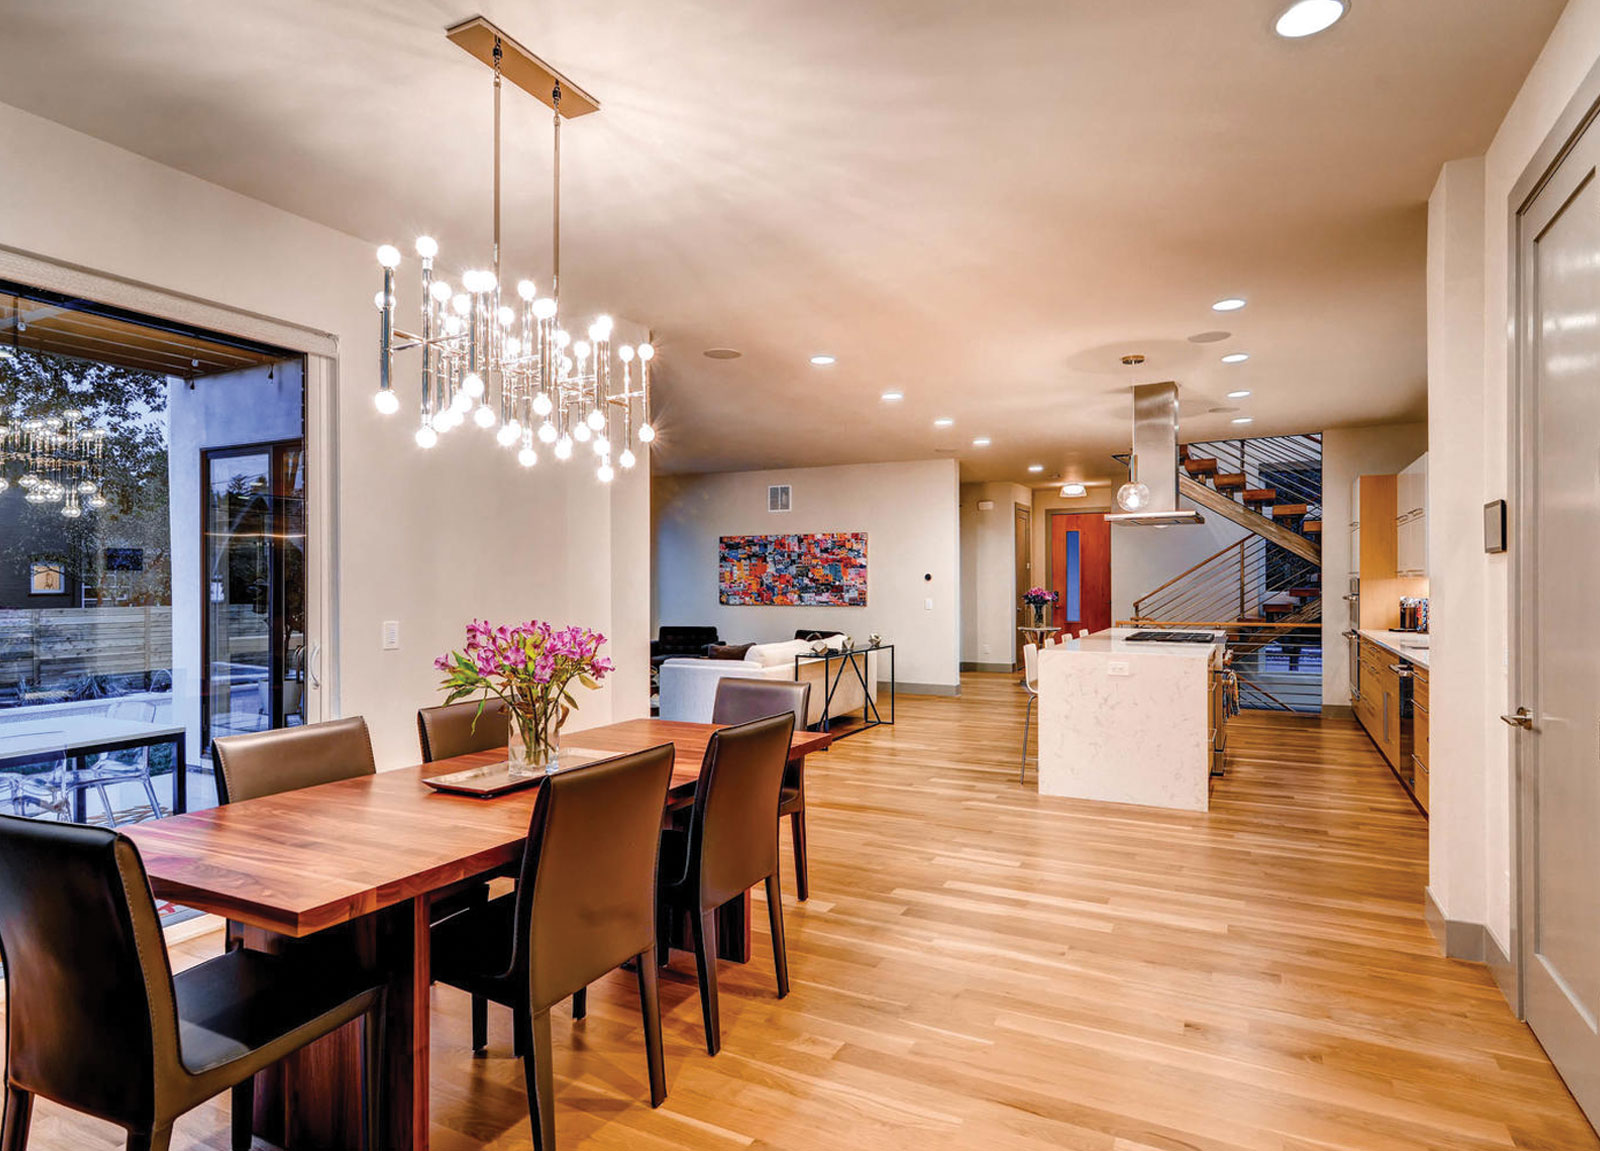 Home Lighting Design is Often the Most Critical Element in Designing a Dream